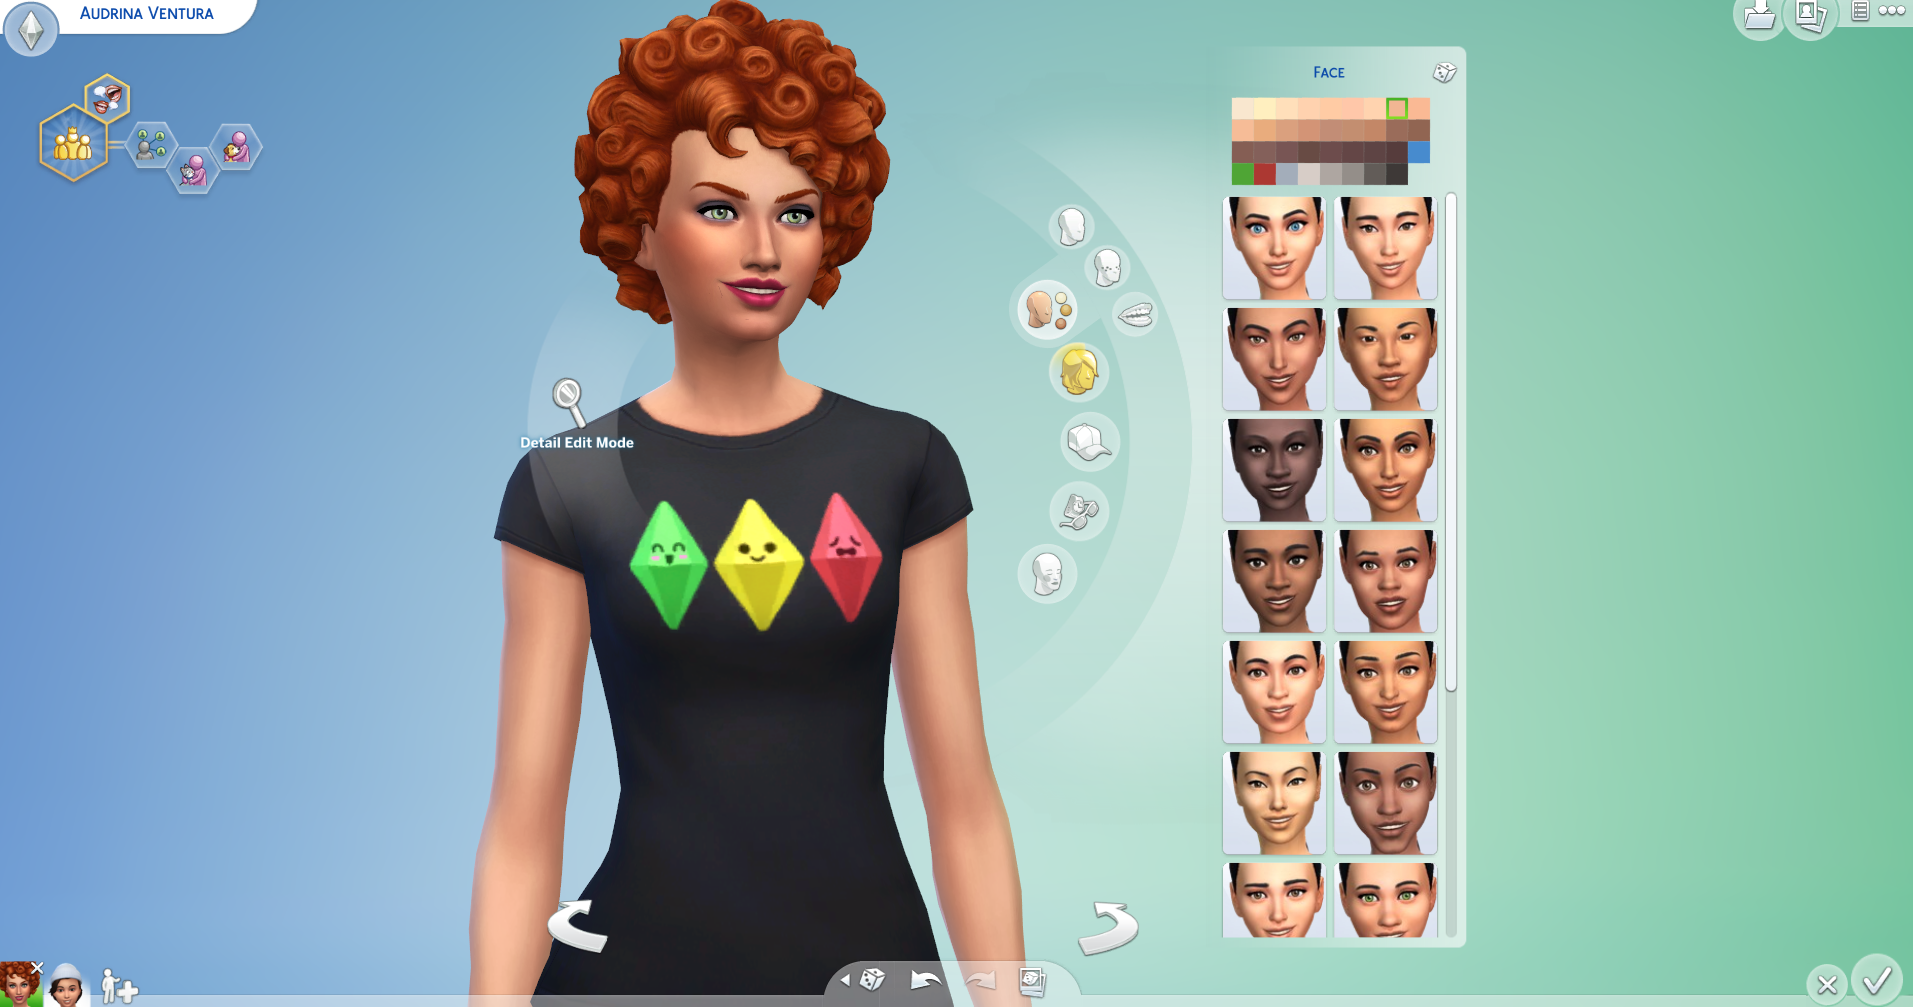 The Sims 4 new skin tones hair style